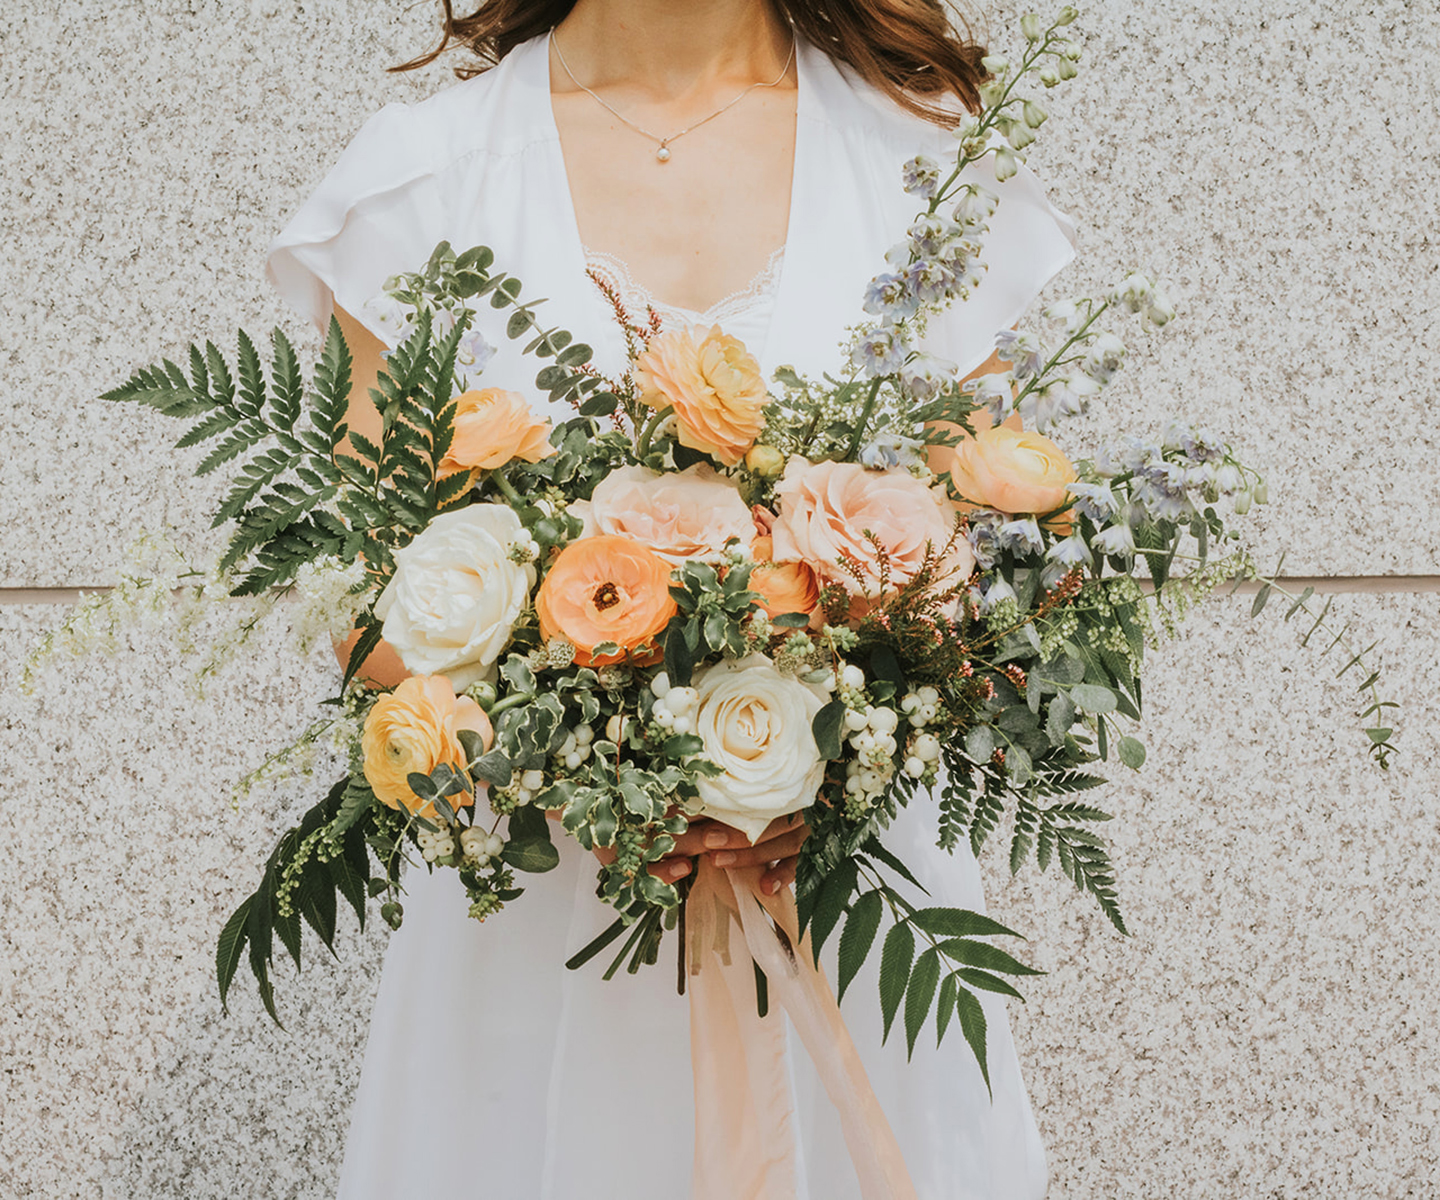 Bridal Bouquet Inspiration for Spring: 12 of the Prettiest Bouquets We've Seen This Spring in Alberta and the Rockies - Faint for Floral on The Bronte Bride